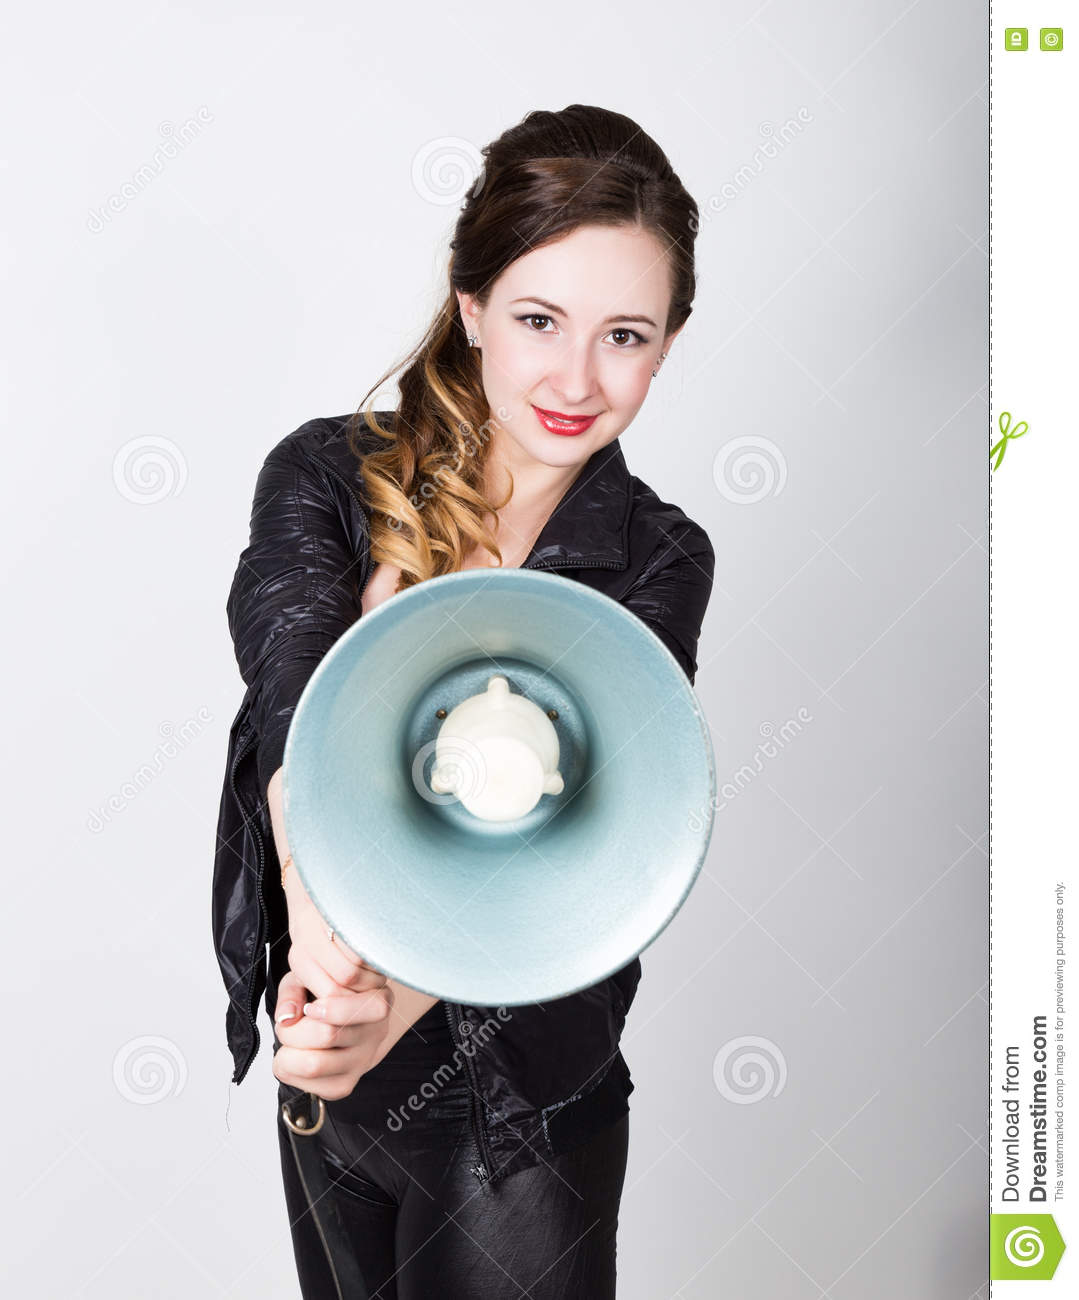 Leggy beautiful girl in black skin-tight trousers and jacket, she yells into a bullhorn. Public Relations